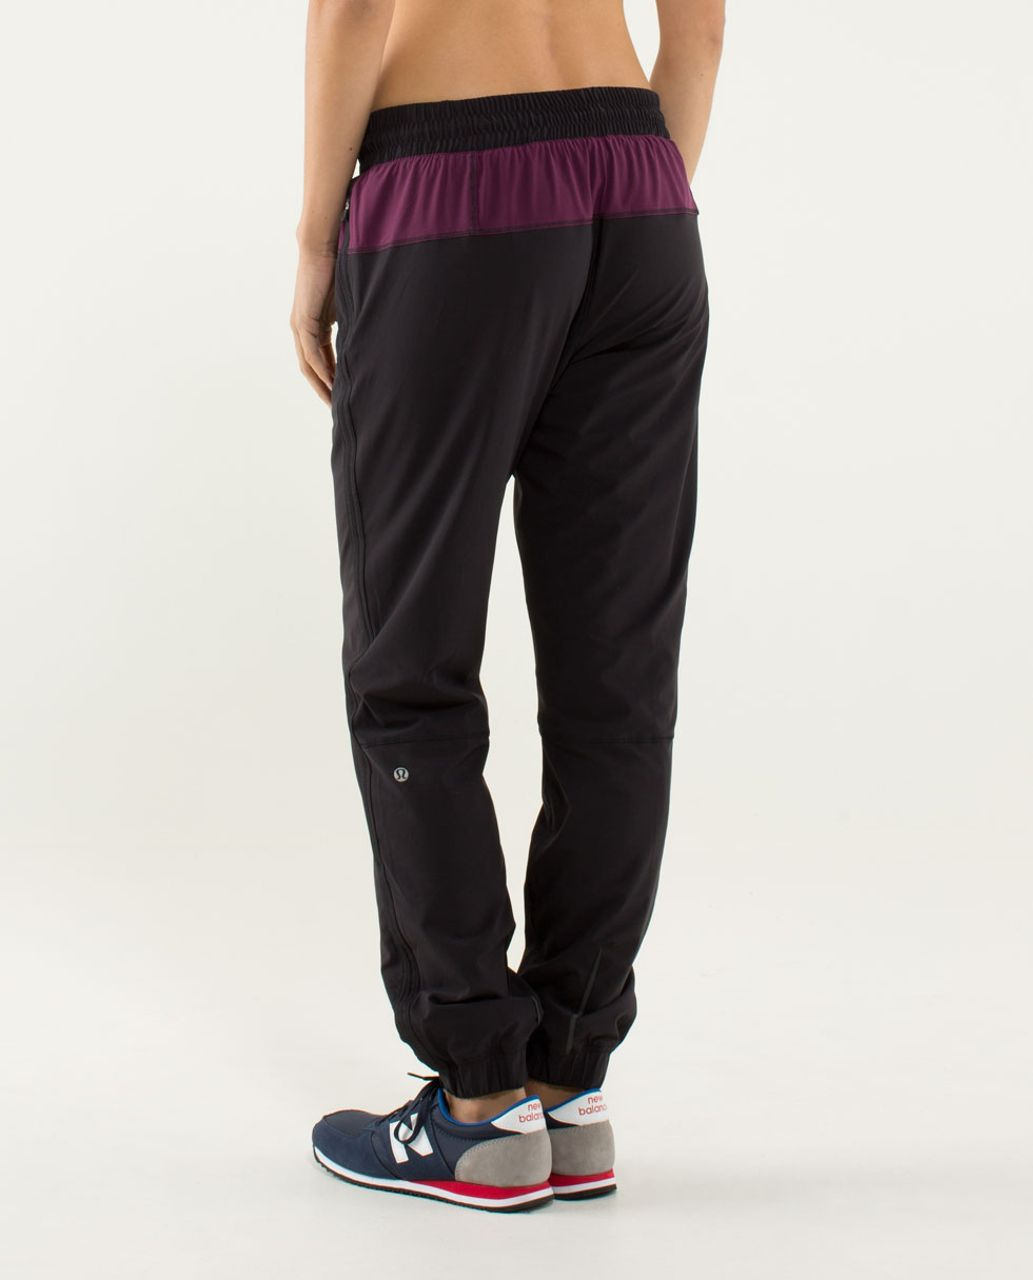 Lululemon Track To Reality Pant - Black / Plum / Split Pea